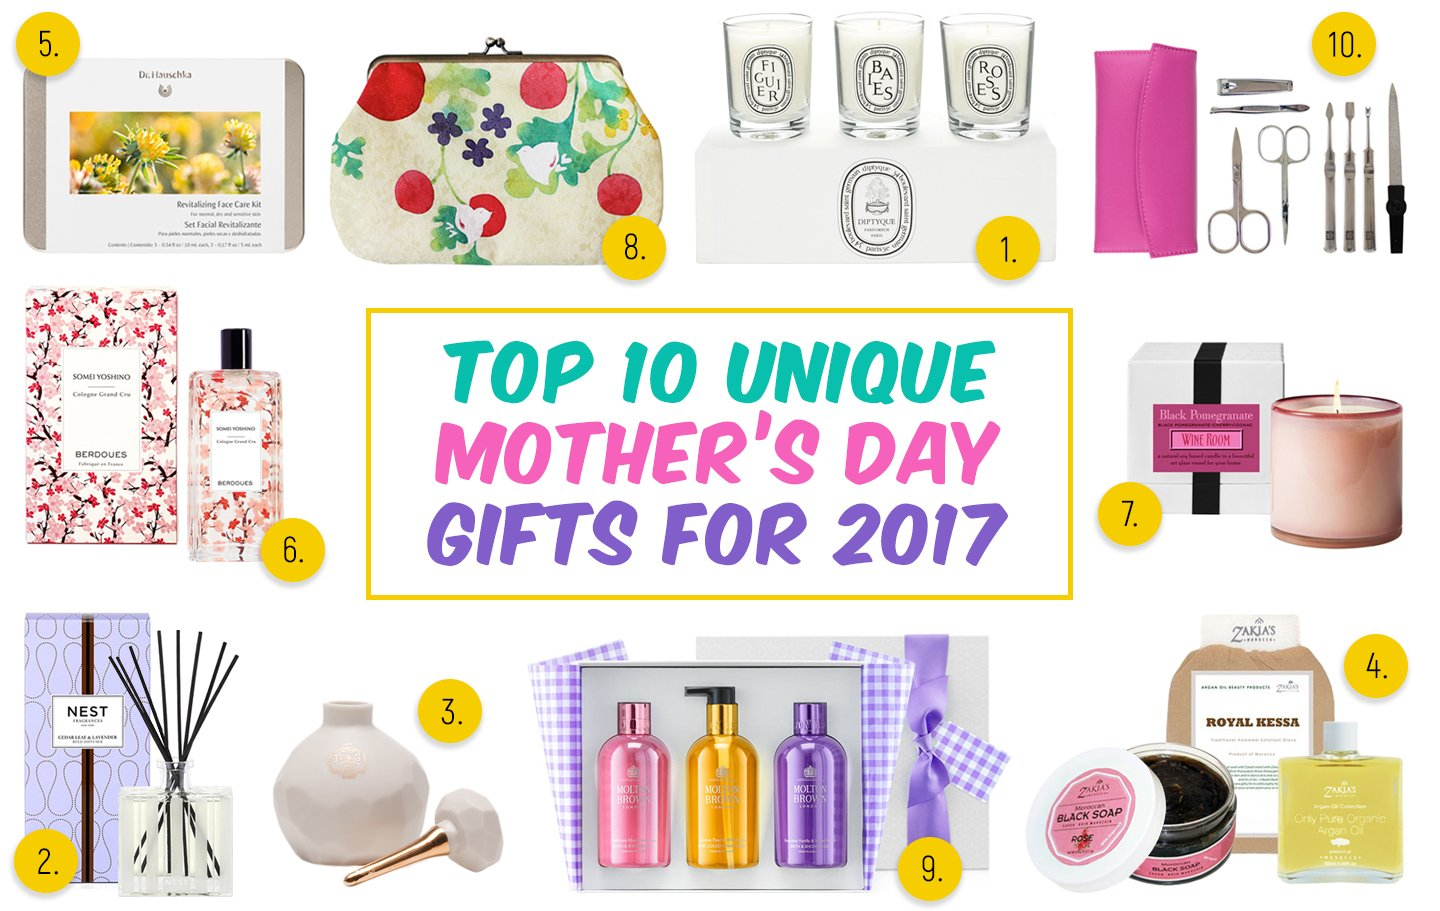 Top 10 Unique Mother's Day Gifts for 2017